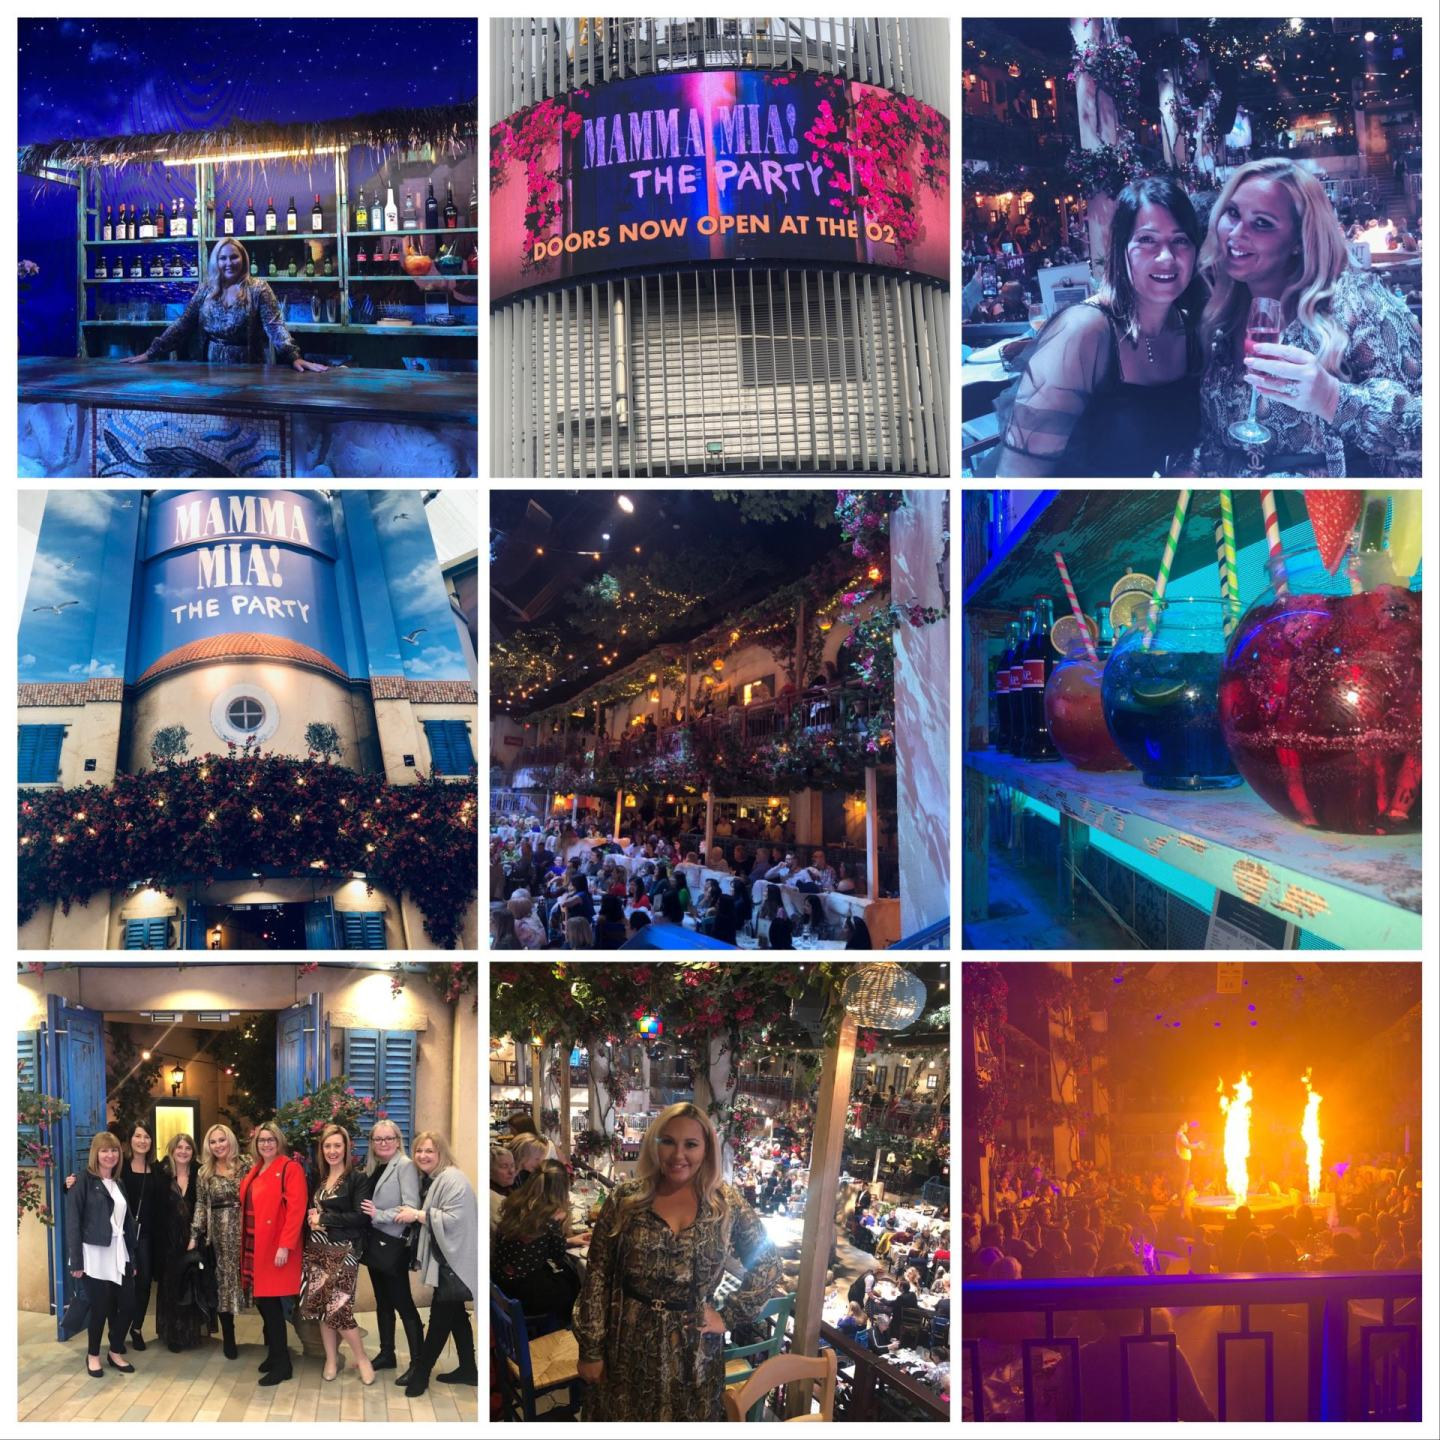 Mamma Mia The party at the 02